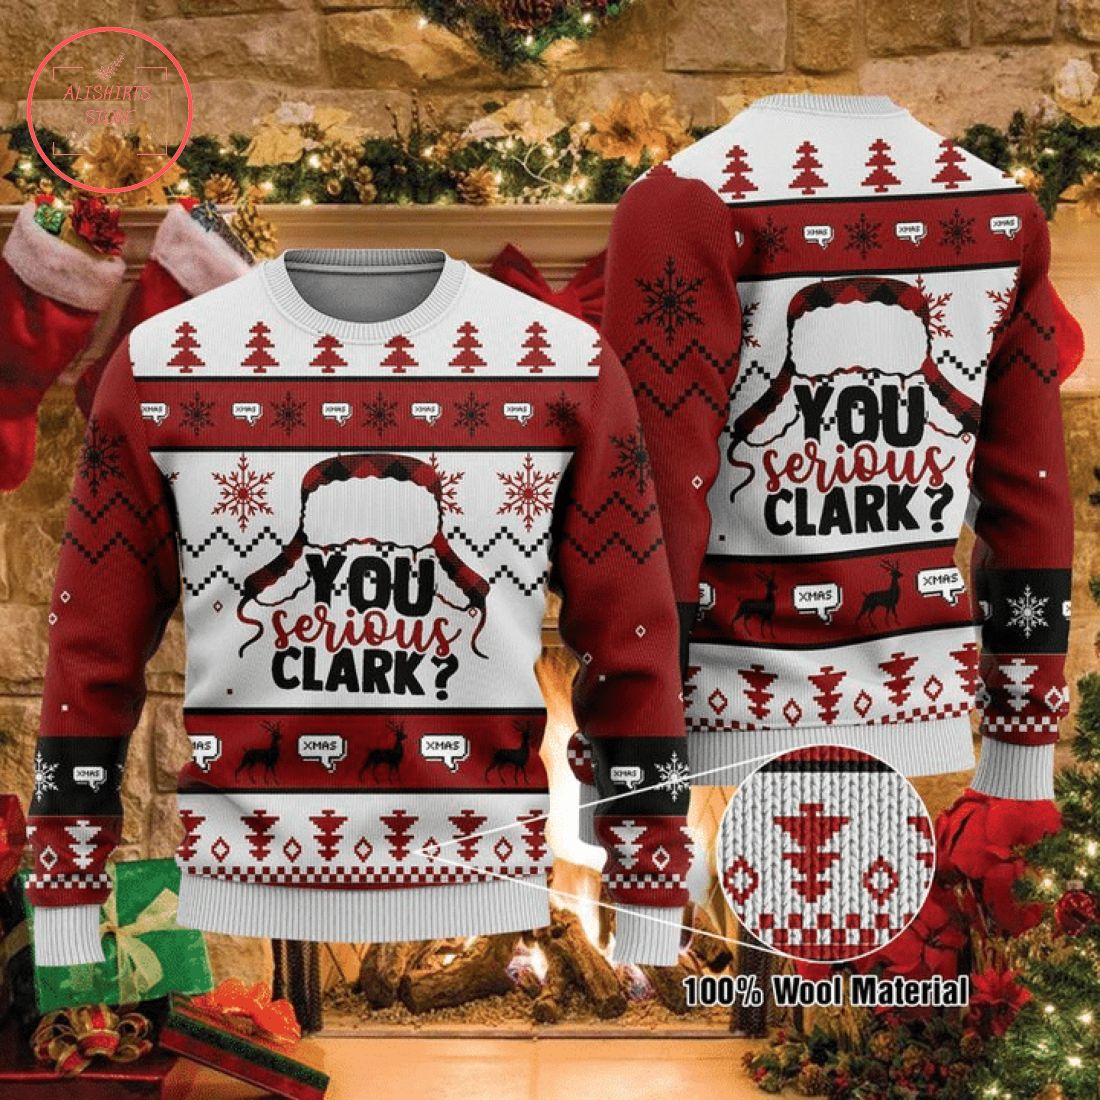 You Serious Clark Ugly Christmas Sweater